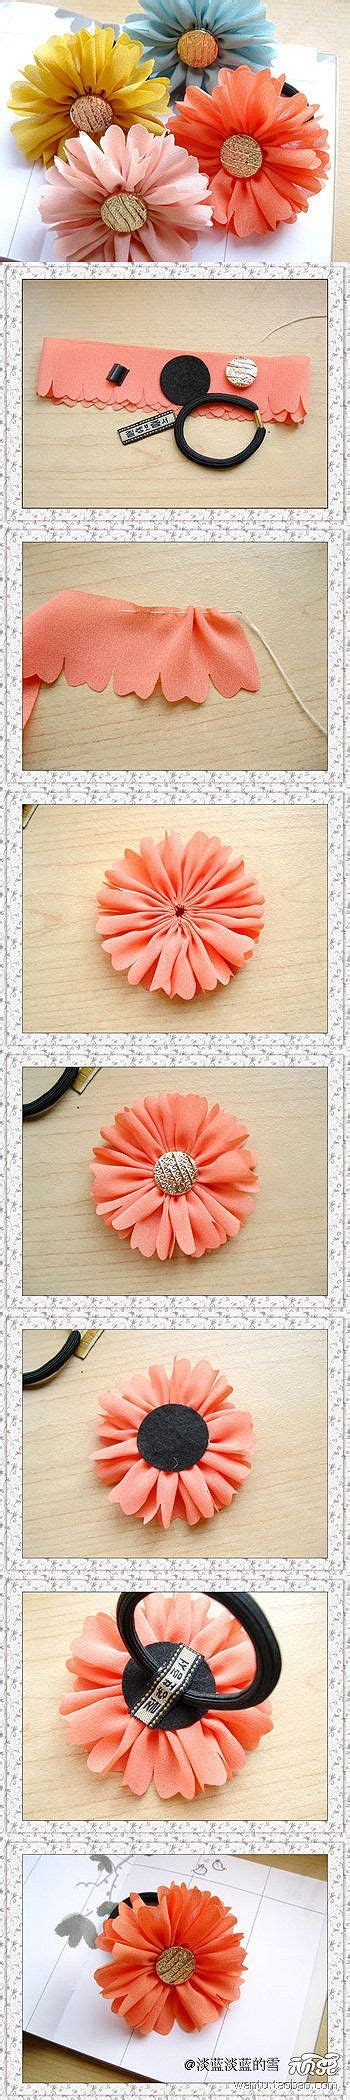 Handmade Accessories Tutorial - 25 best ideas about fabric flower tutorial on